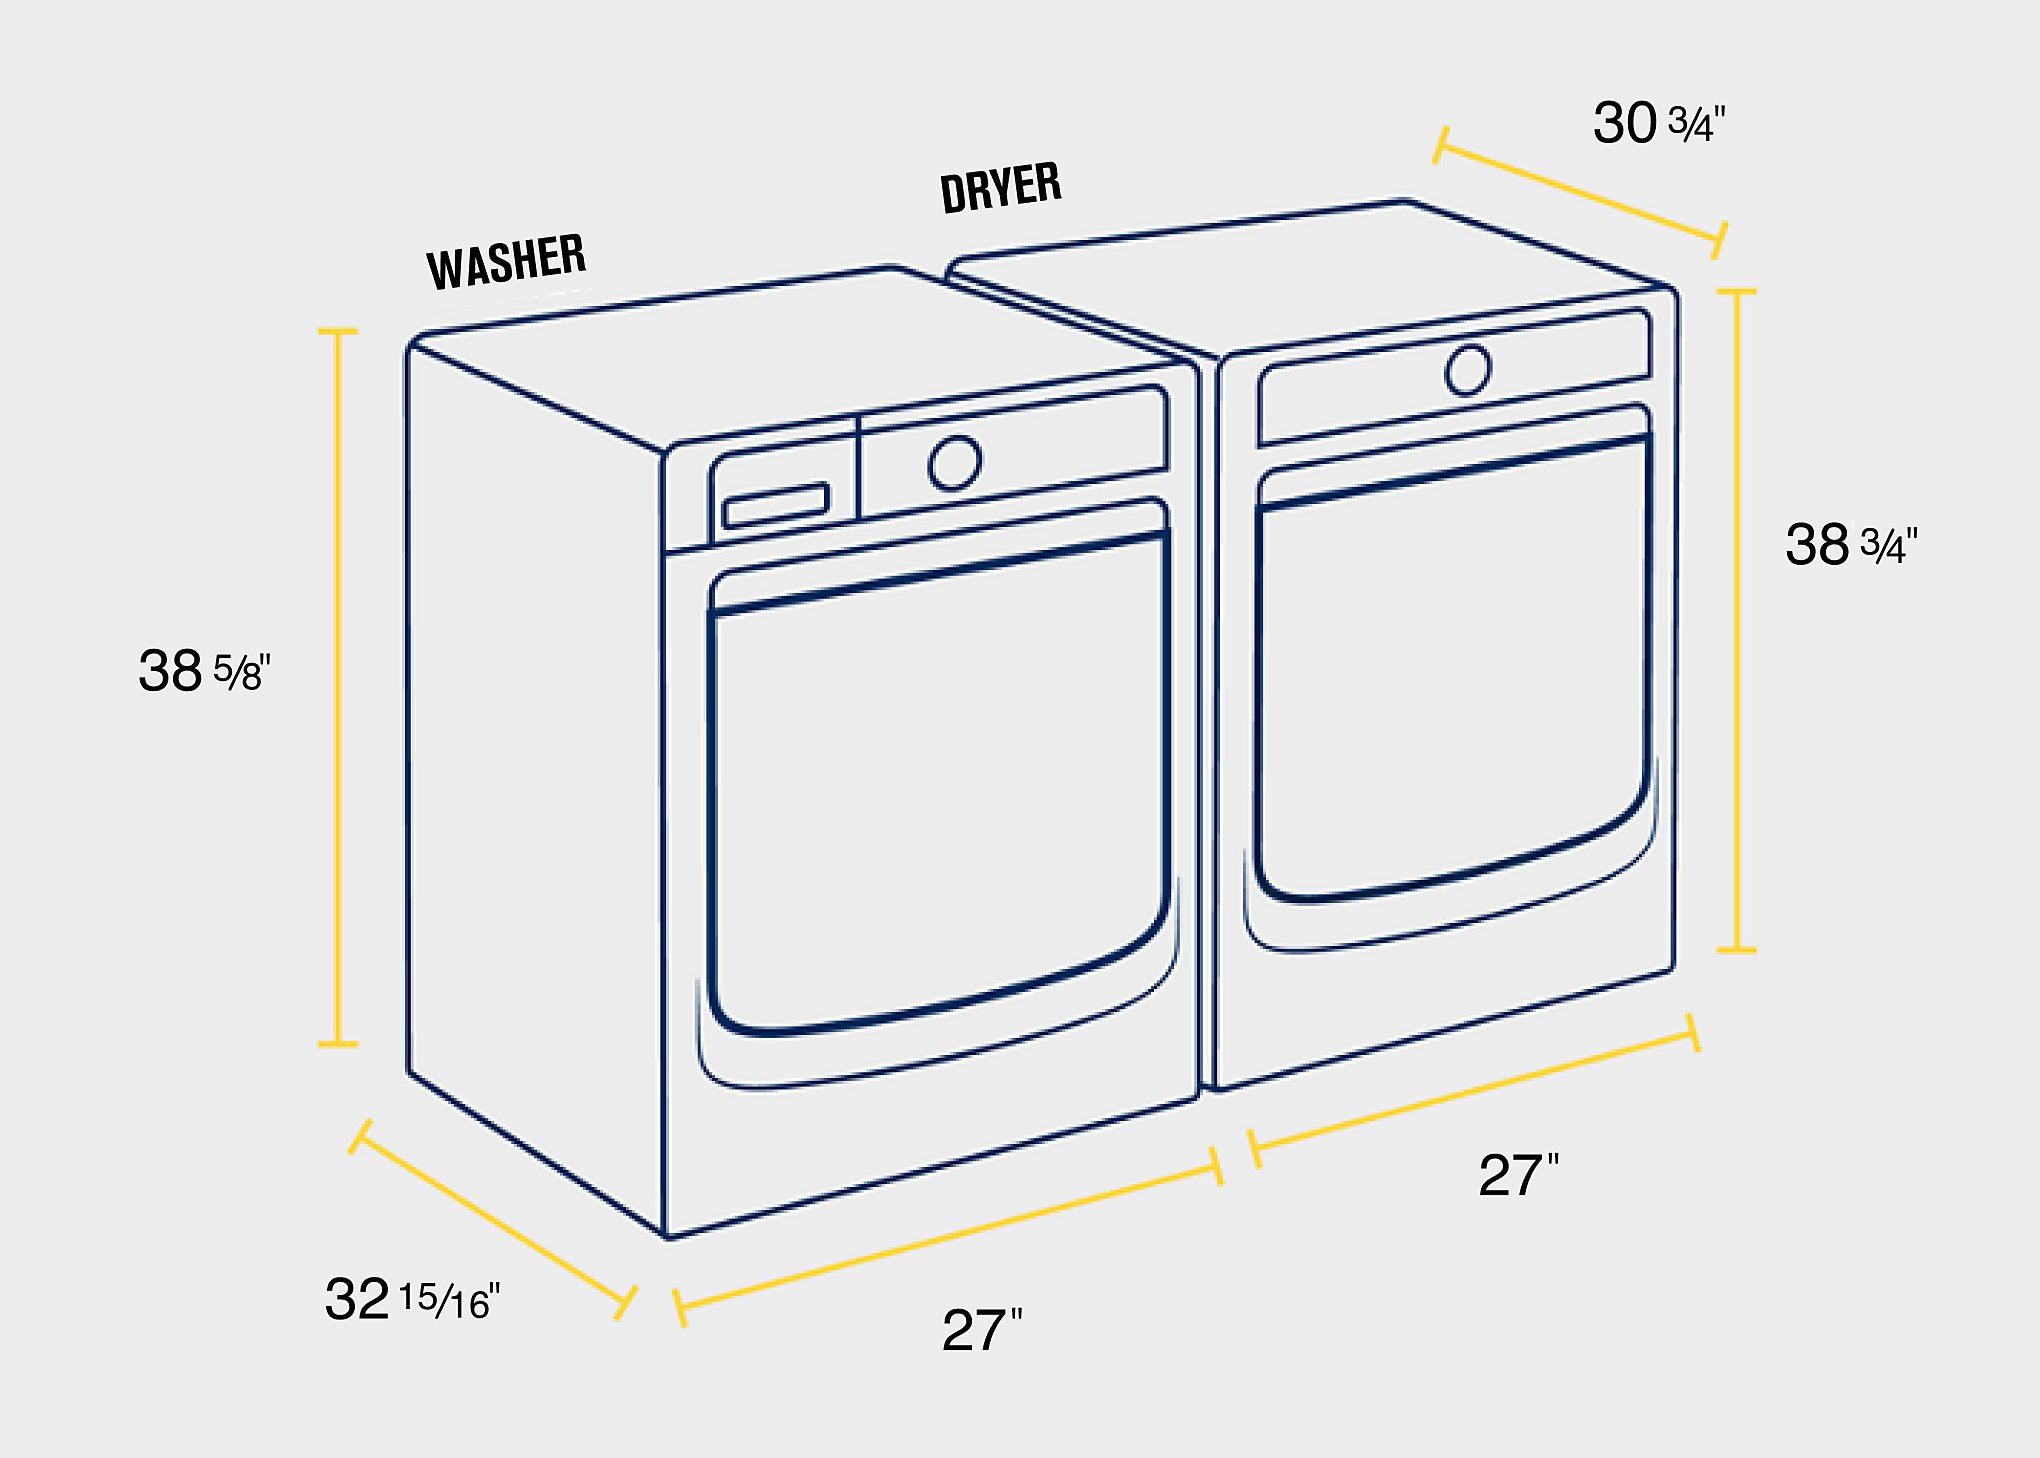 Sample measurements for a front load laundry pair